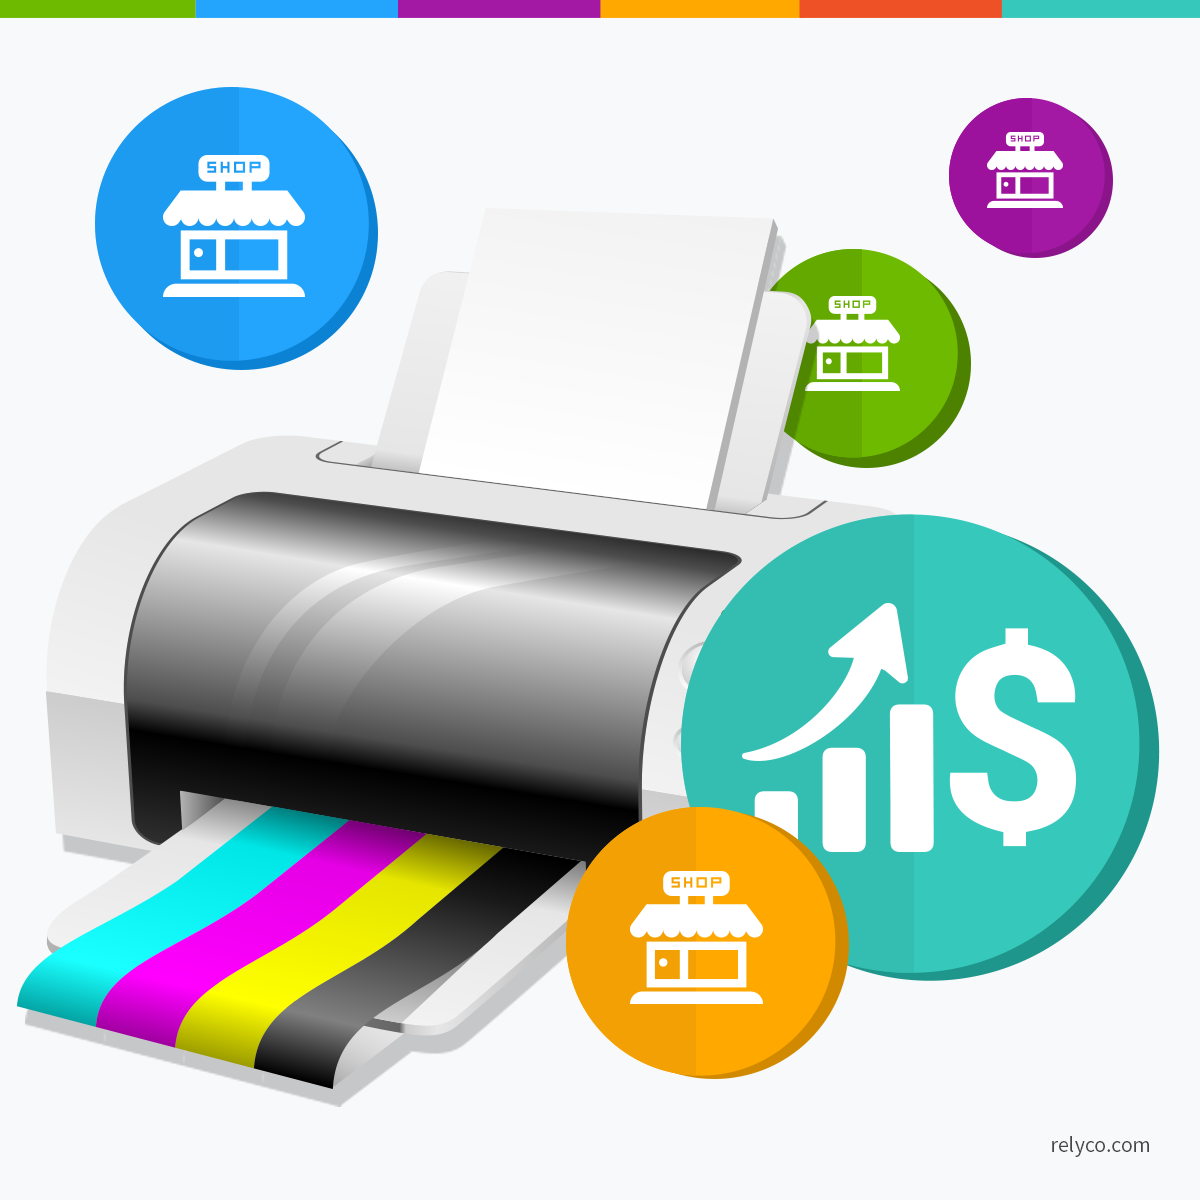 How Inkjet Printing Has Fueled Growth In The Print Industry